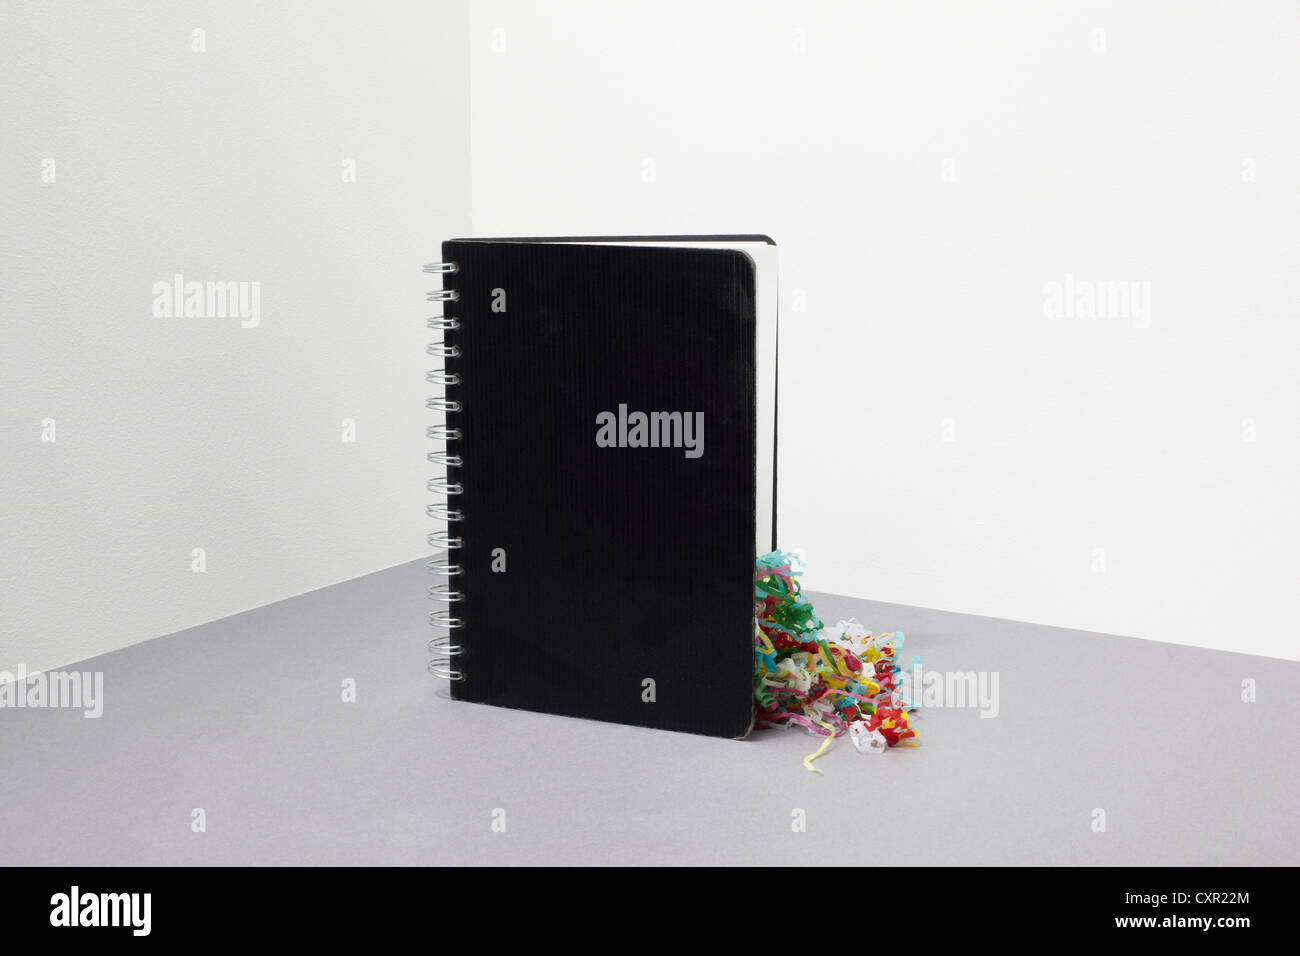 Notebook with streamers inside - Stock Image